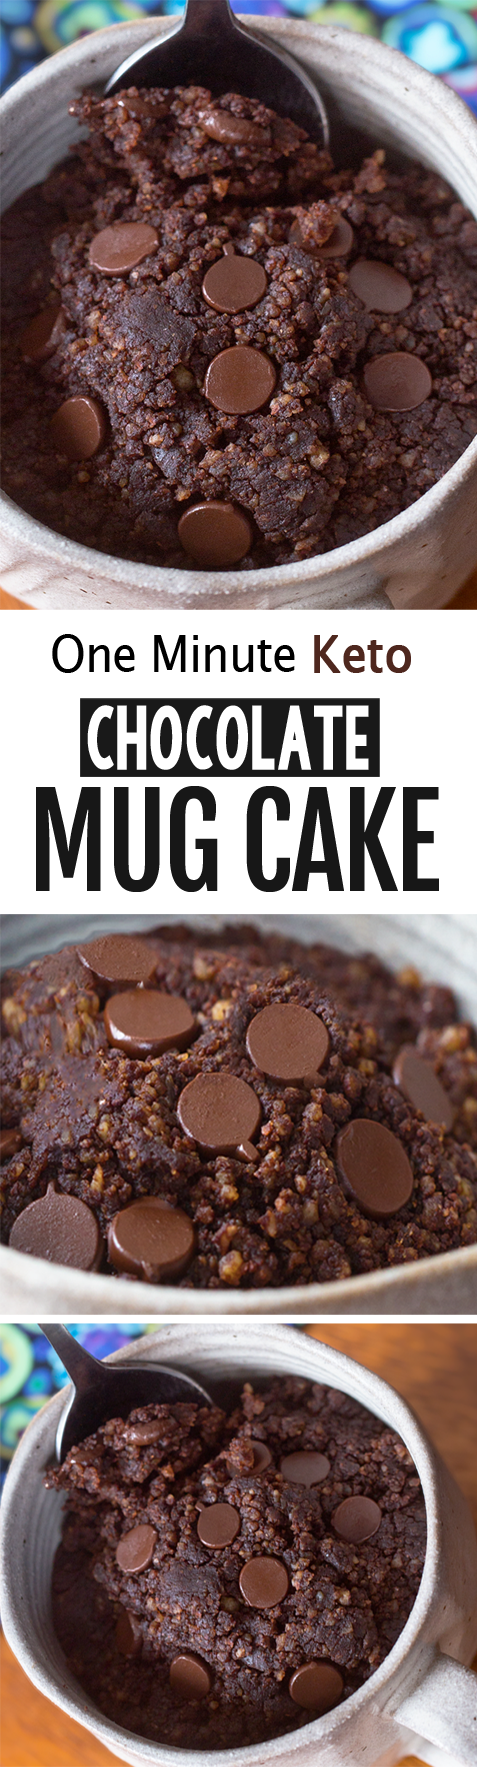 Keto Mug Cake - The BEST Low Carb Recipe! | Keto mug cake ...